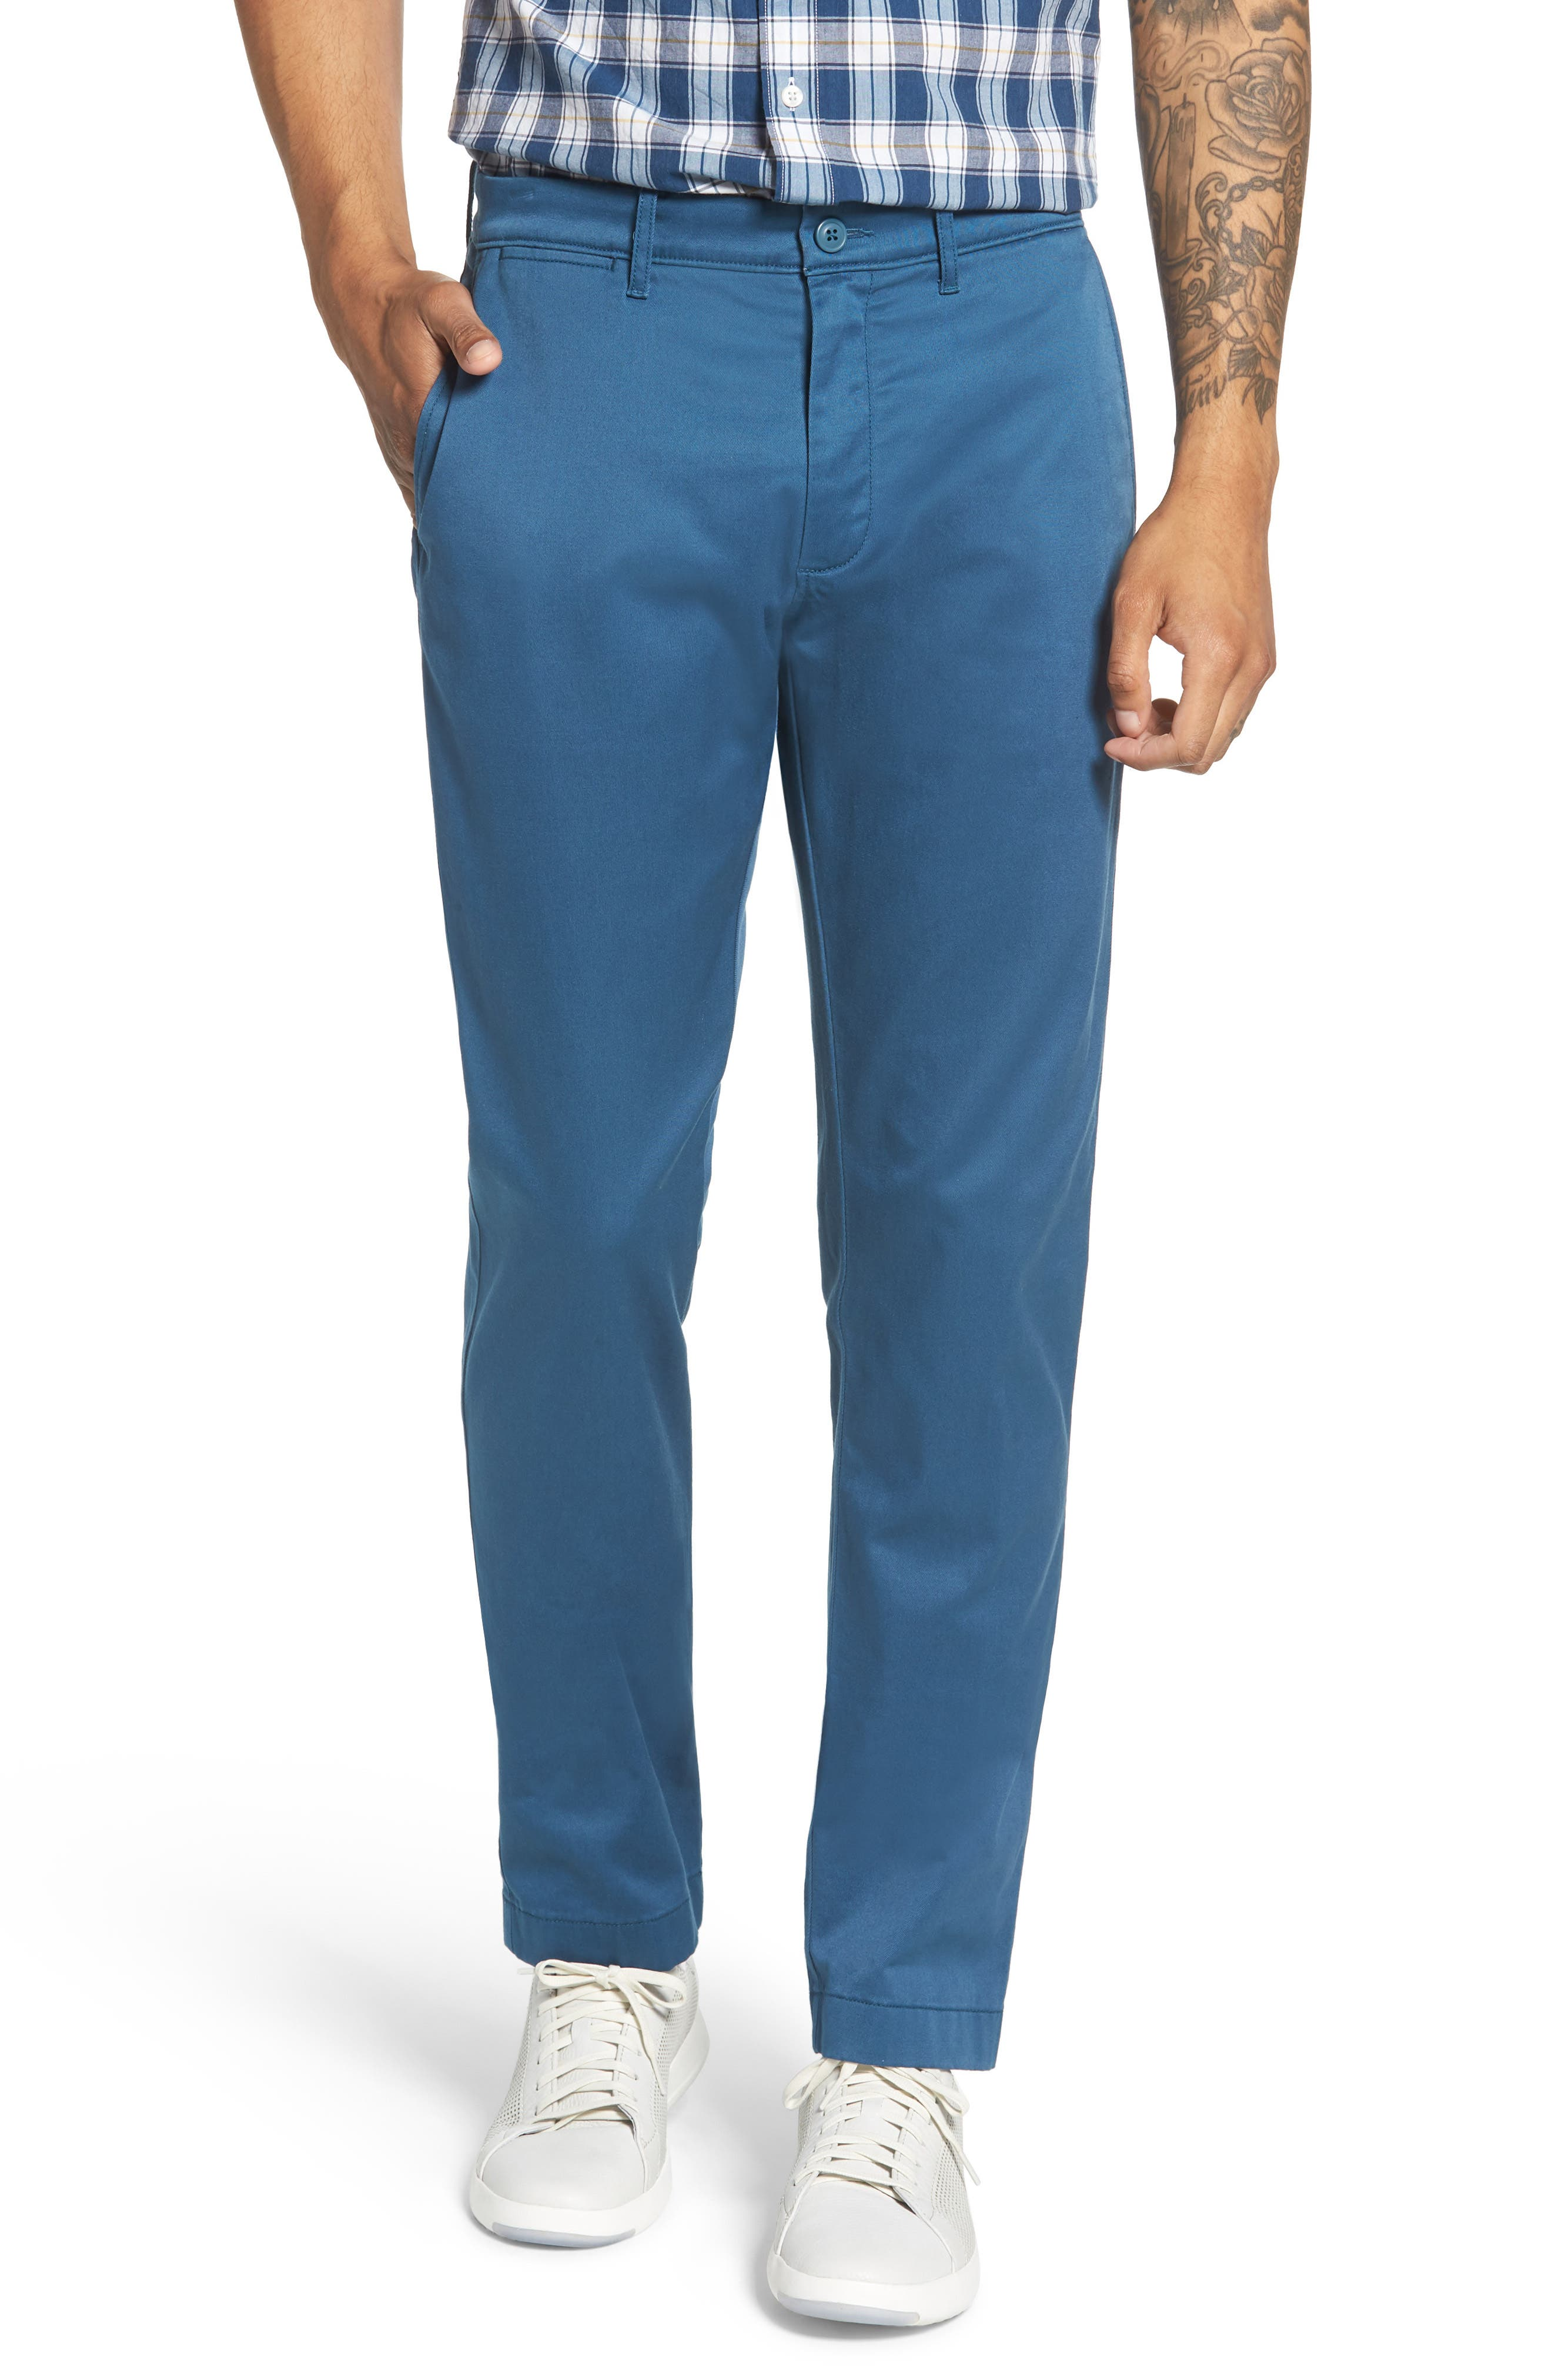 484 Slim Fit Stretch Chino Pants,                             Main thumbnail 10, color,